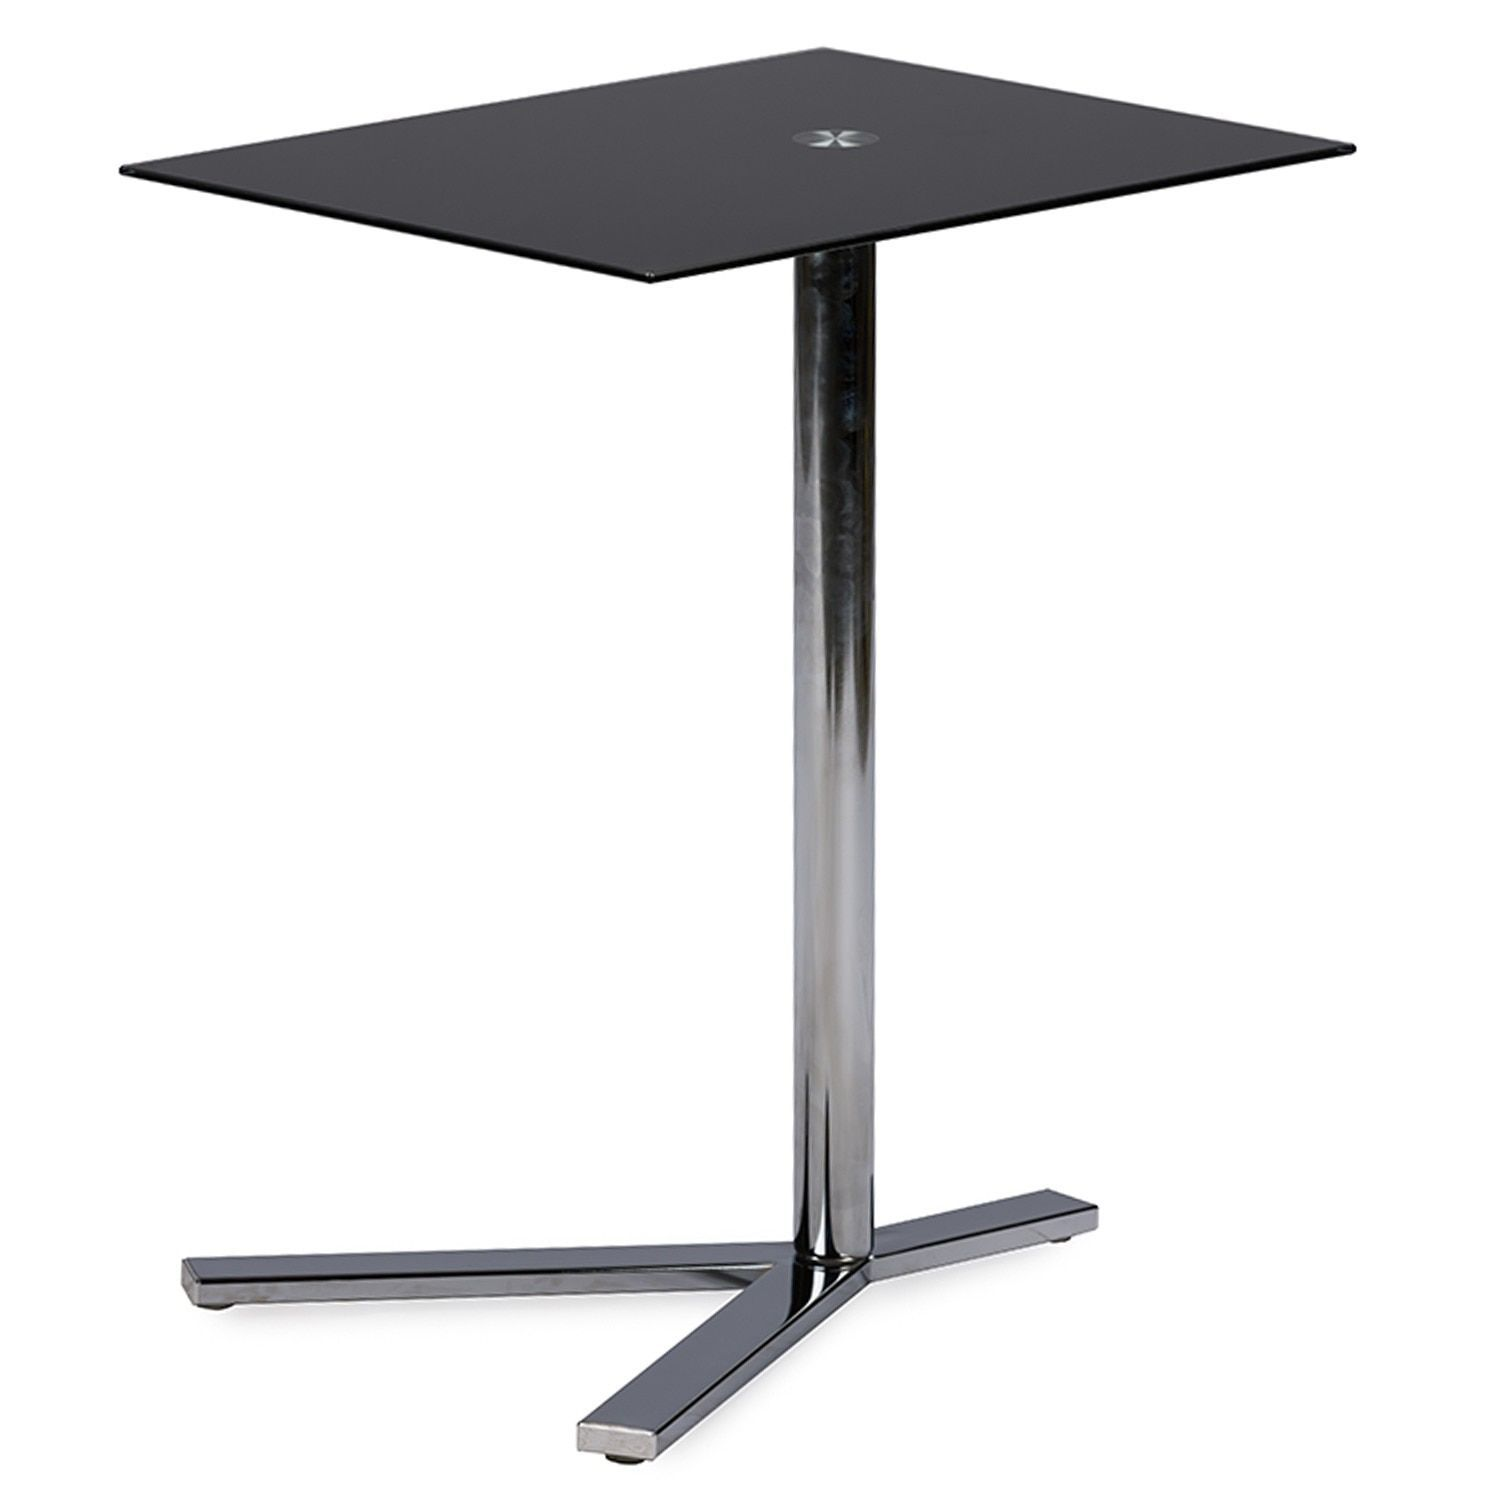 Baxton Studio Avolia Snack Table with Black Tempered Glass (Aking-59848)